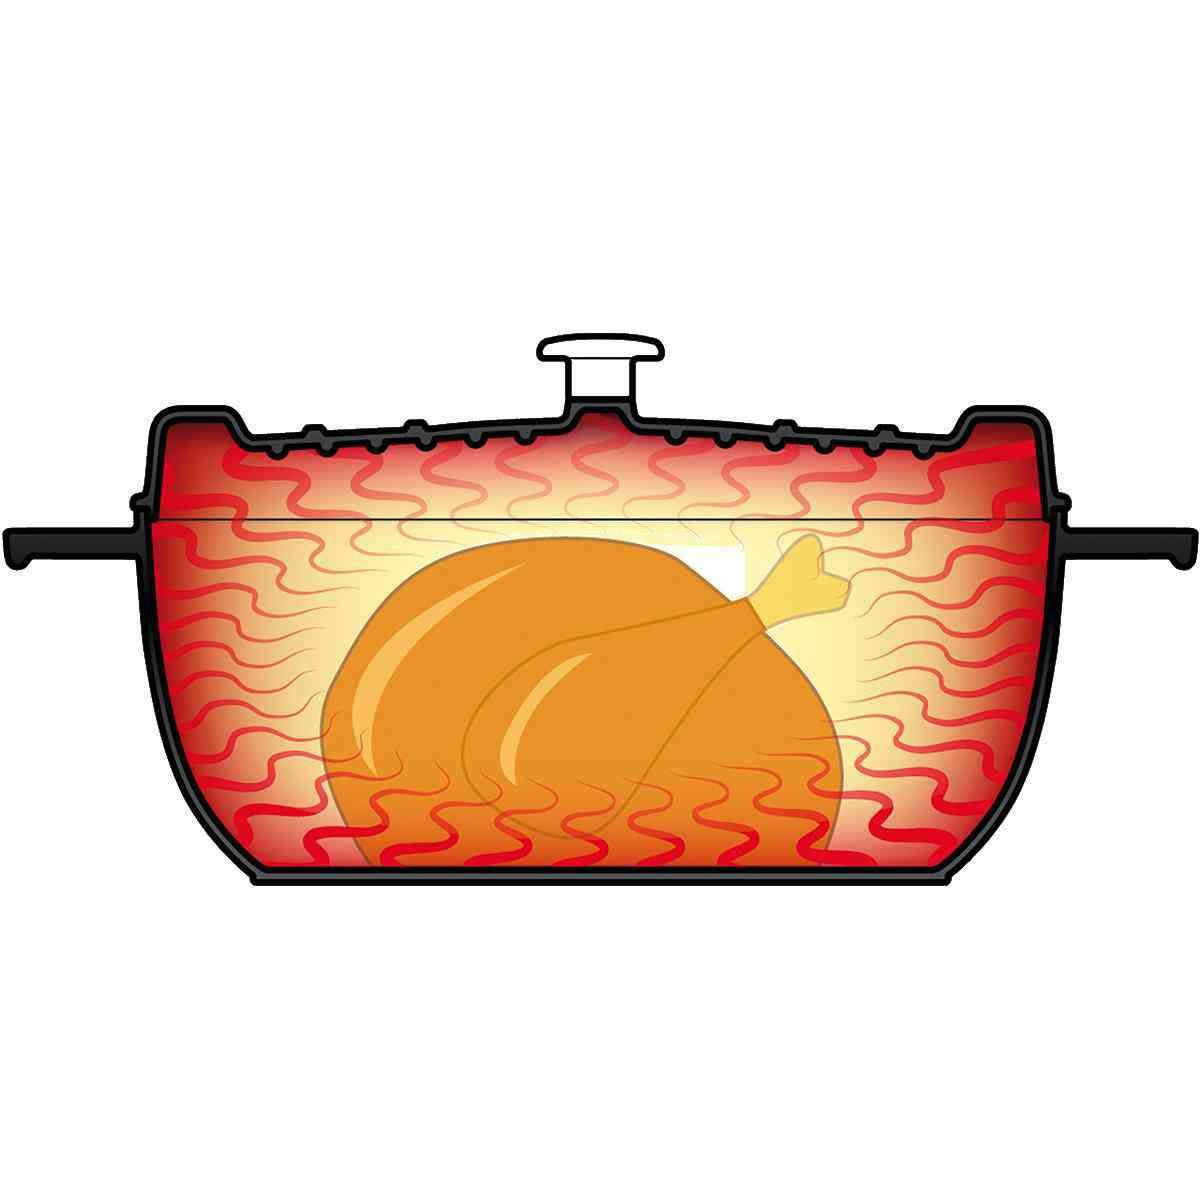 arcana roaster oval red